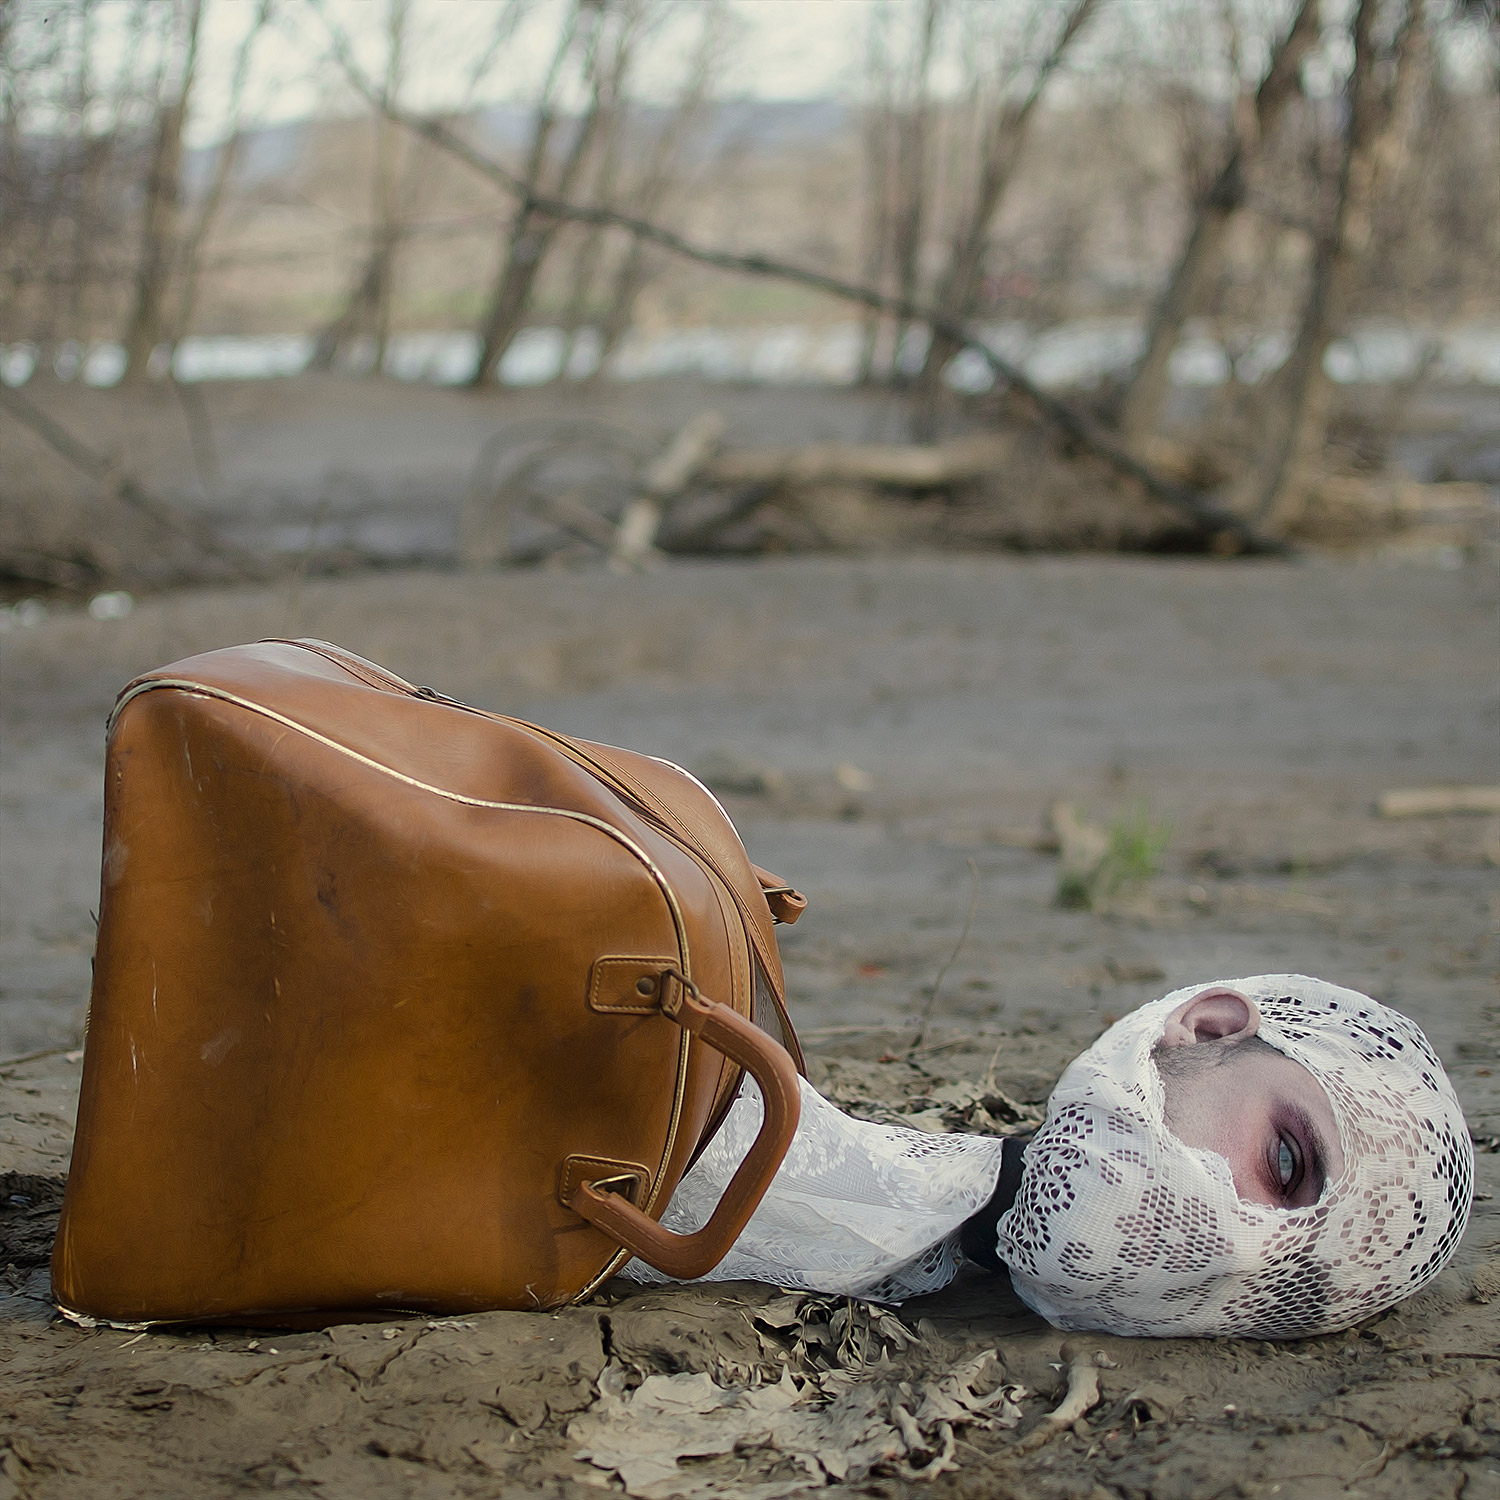 Christopher McKenney - head wrapped in lace